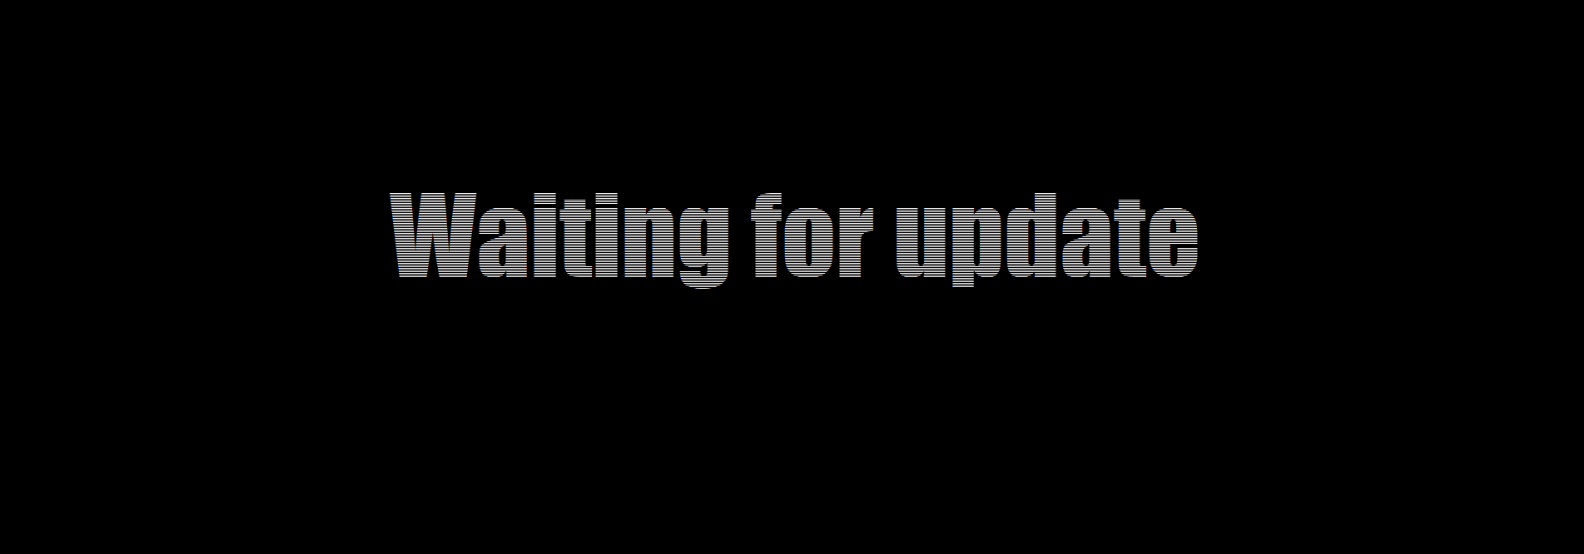 Waiting for update